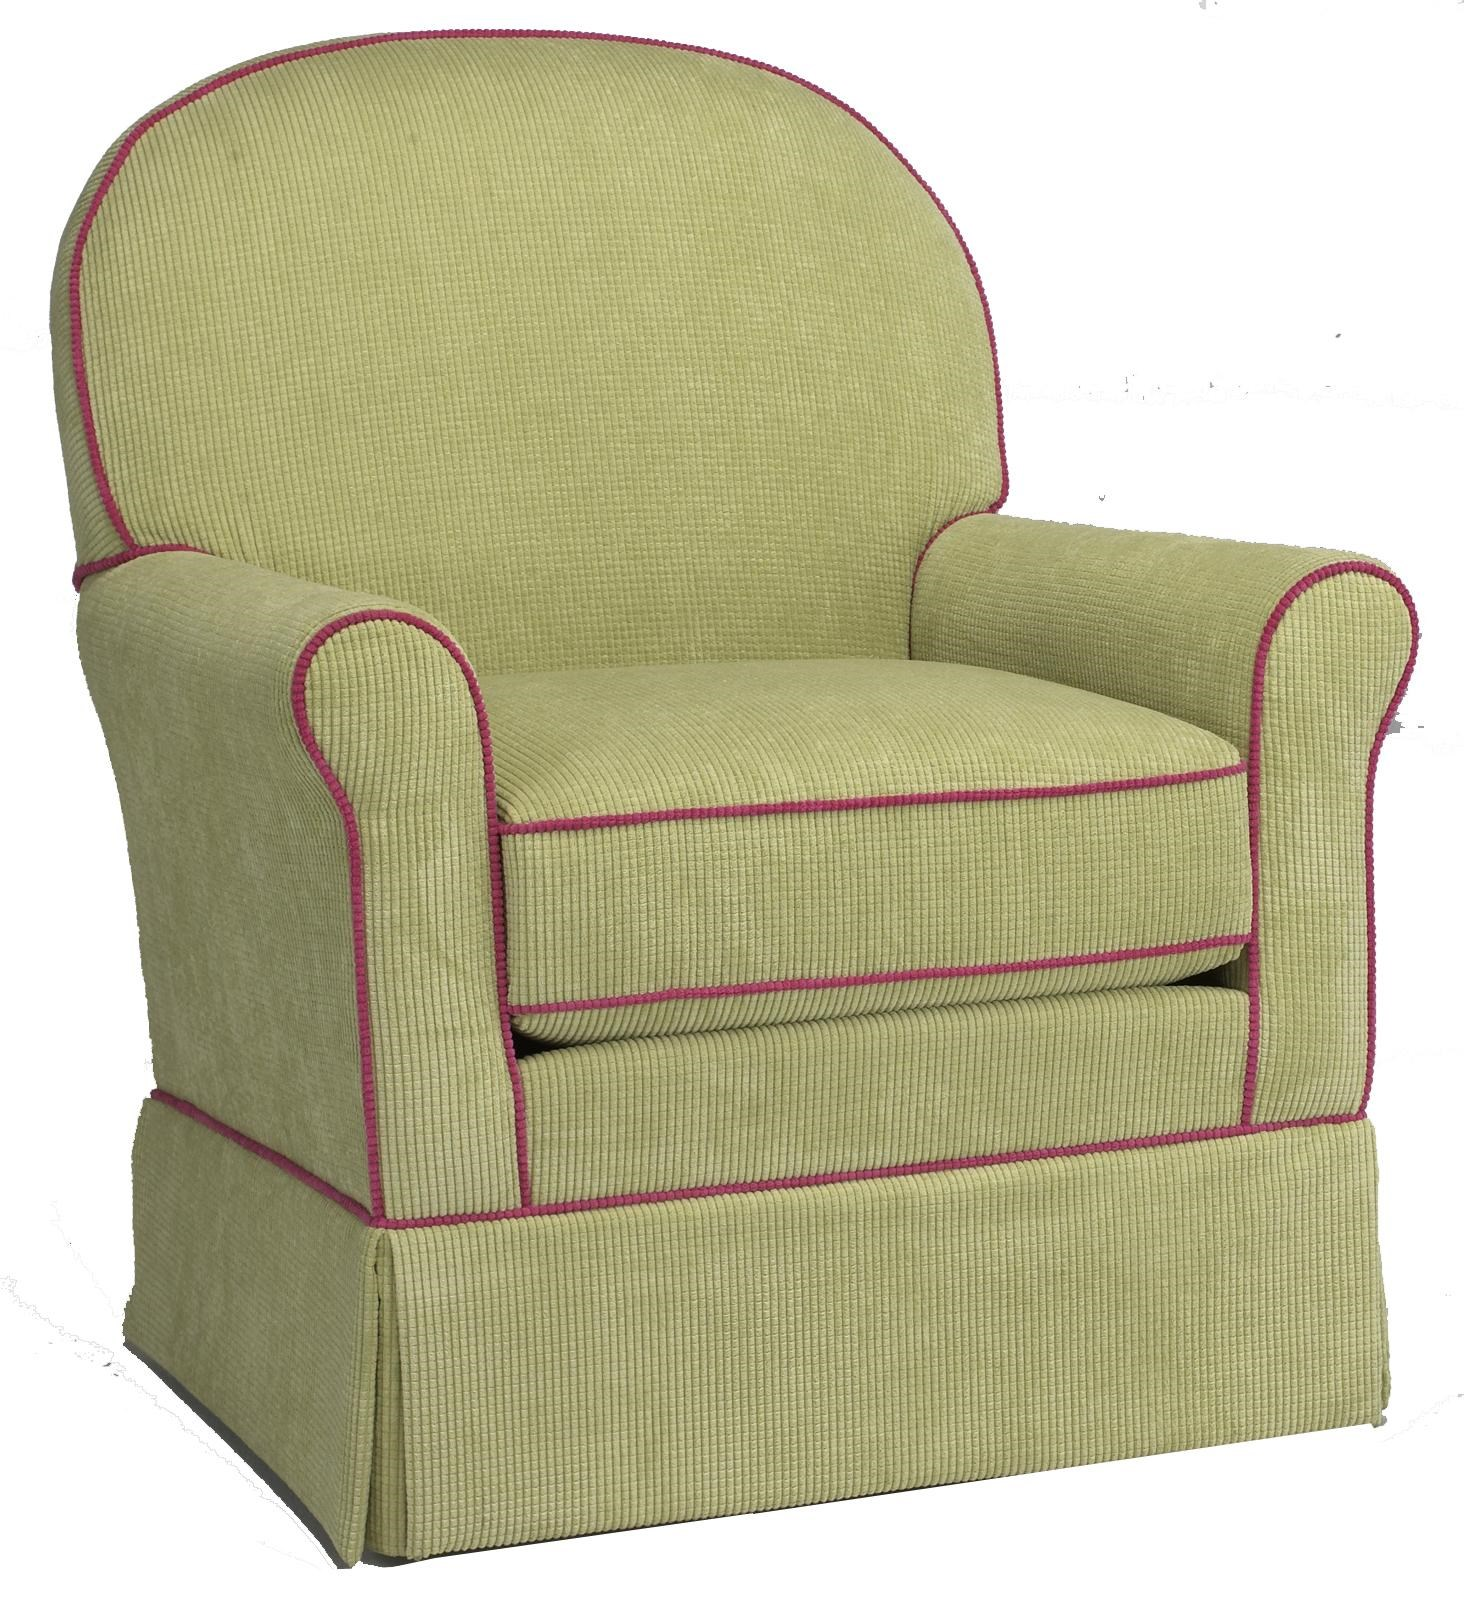 Best Chairs Storytime Series Storytime Swivel Chairs and Ottomans Peyton Chair  sc 1 st  Best Home Furnishings | St Louis MO & Best Chairs Storytime Series Accent Chairs | St. Louis Chesterfield ...